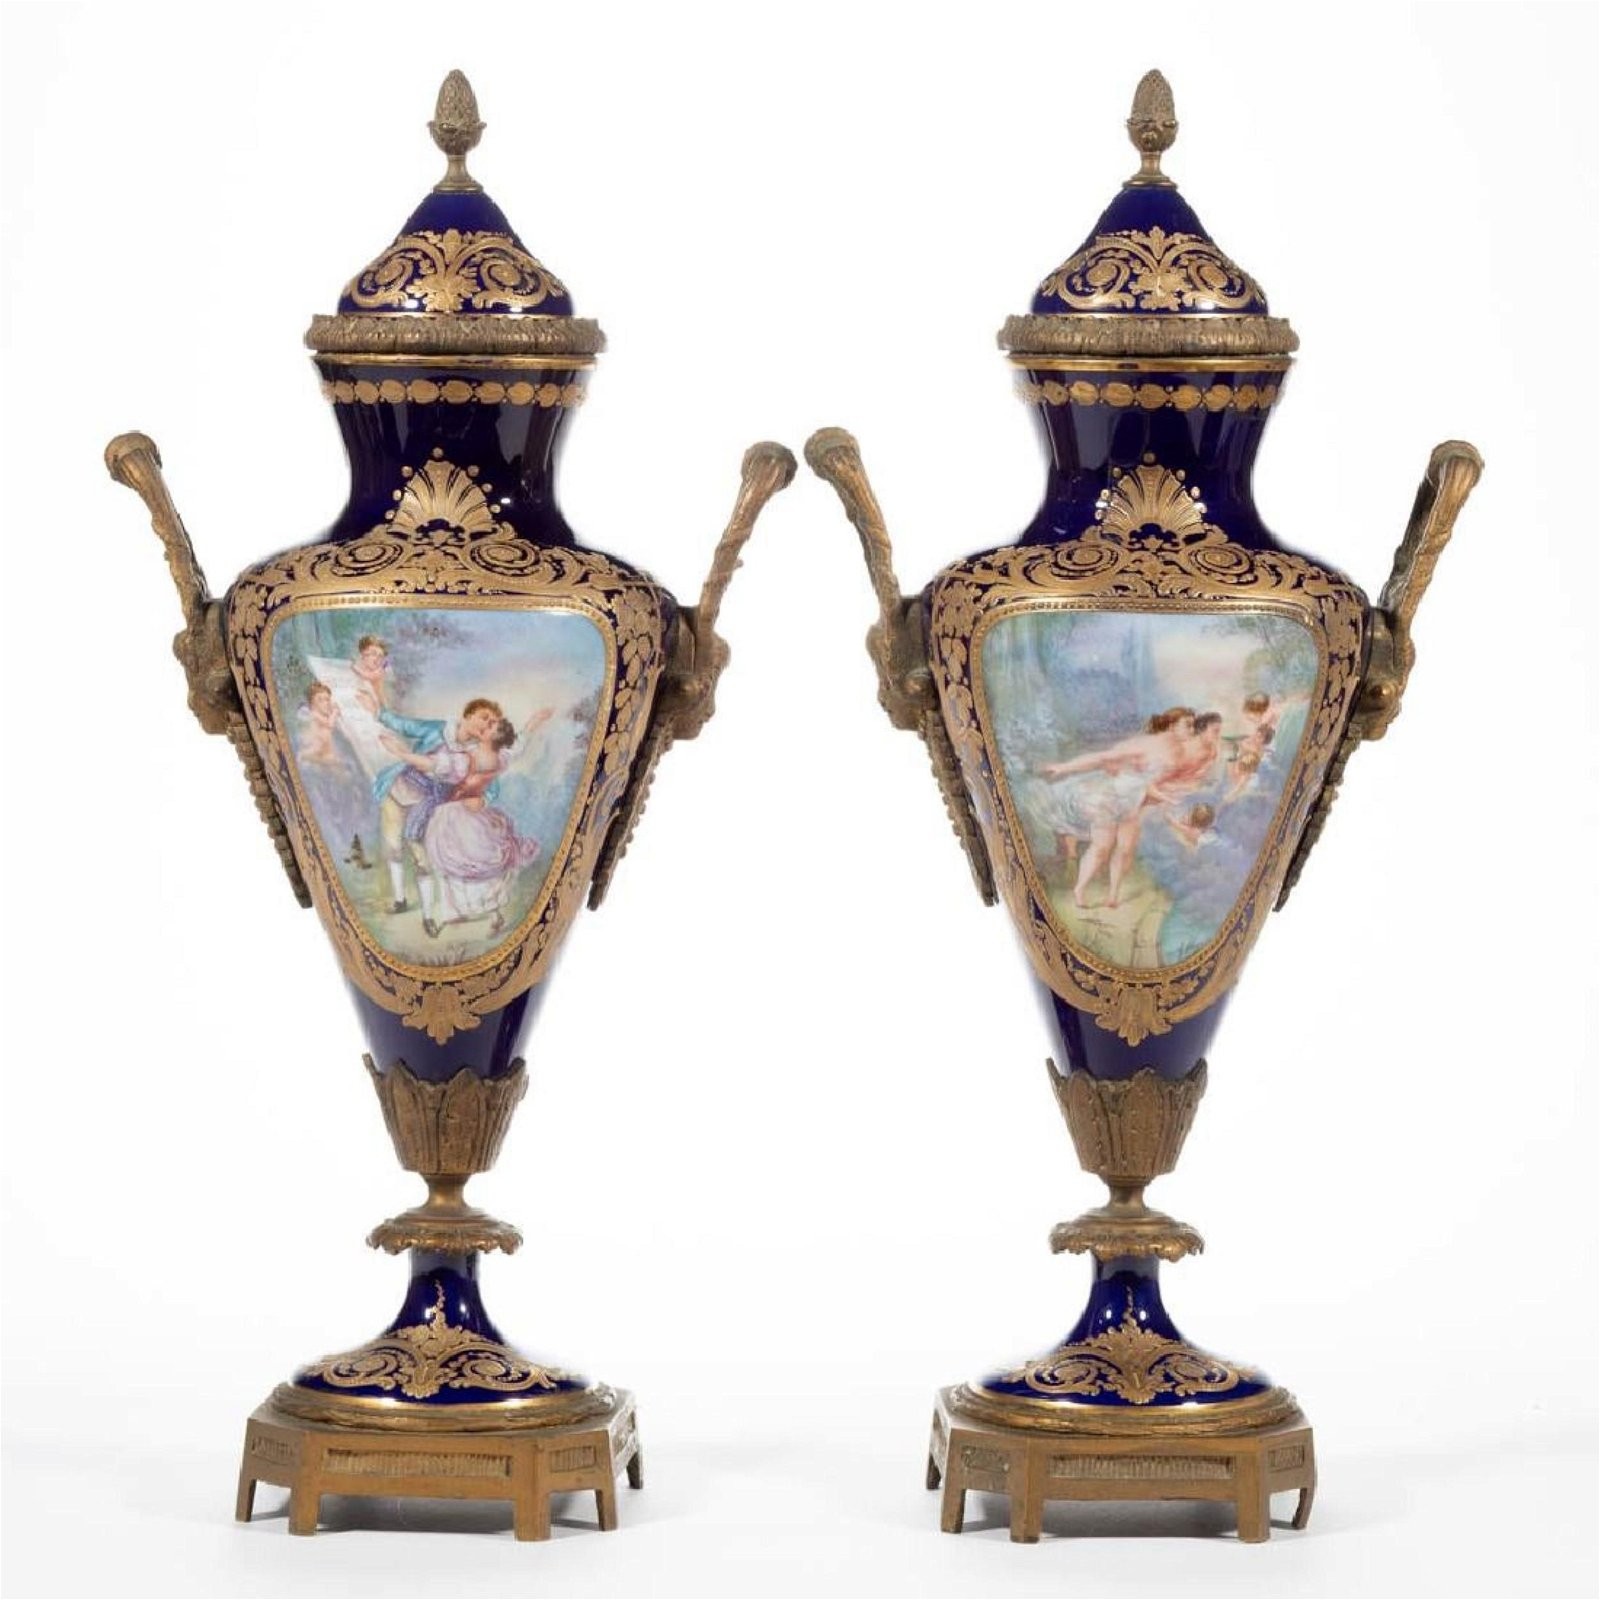 Pair of 19th C. Sevres Porcelain & Bronze Covered Urns